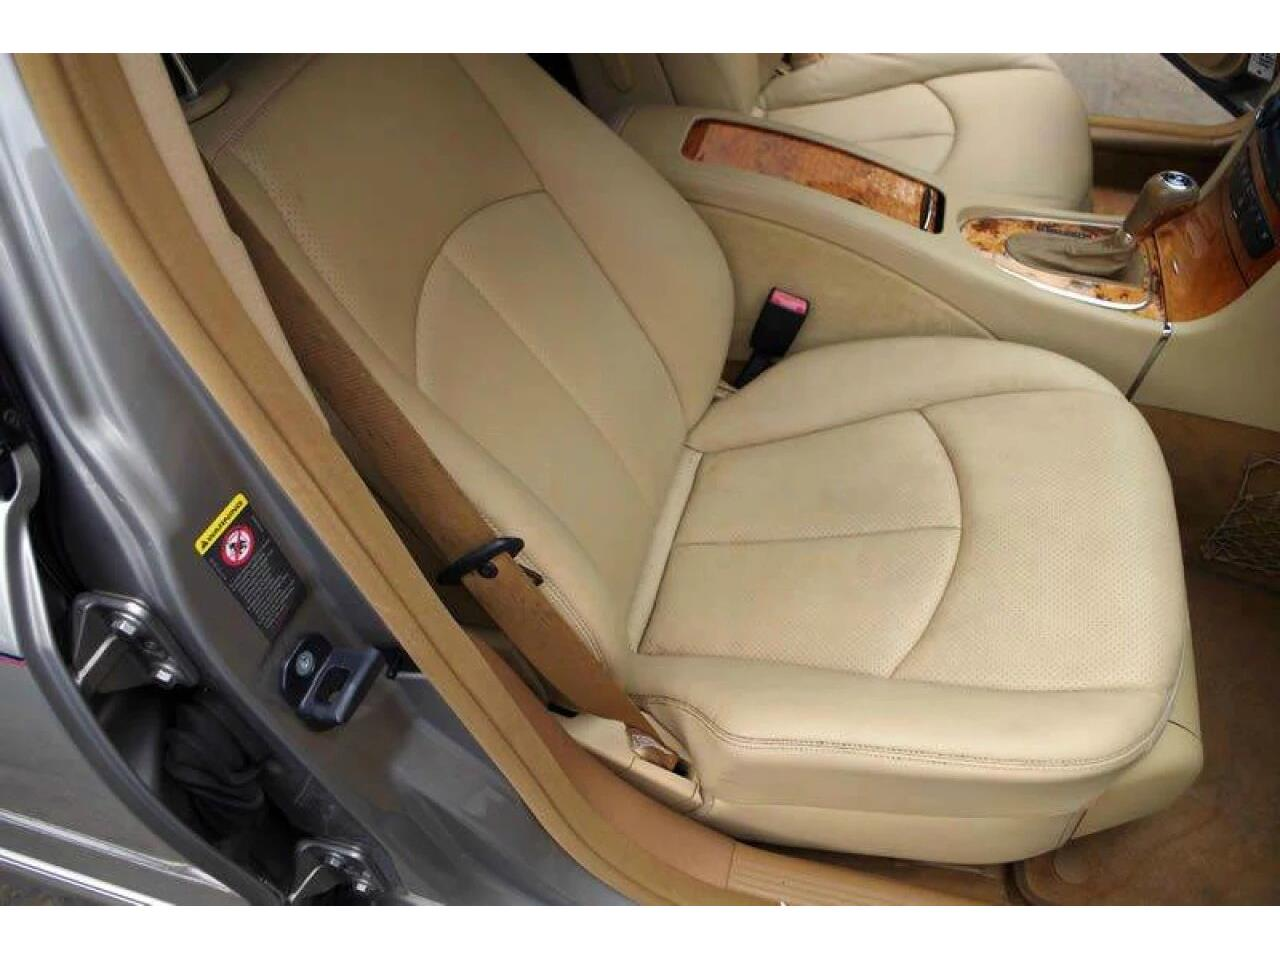 2008 Mercedes-Benz E-Class (CC-1131235) for sale in Fort Worth, Texas